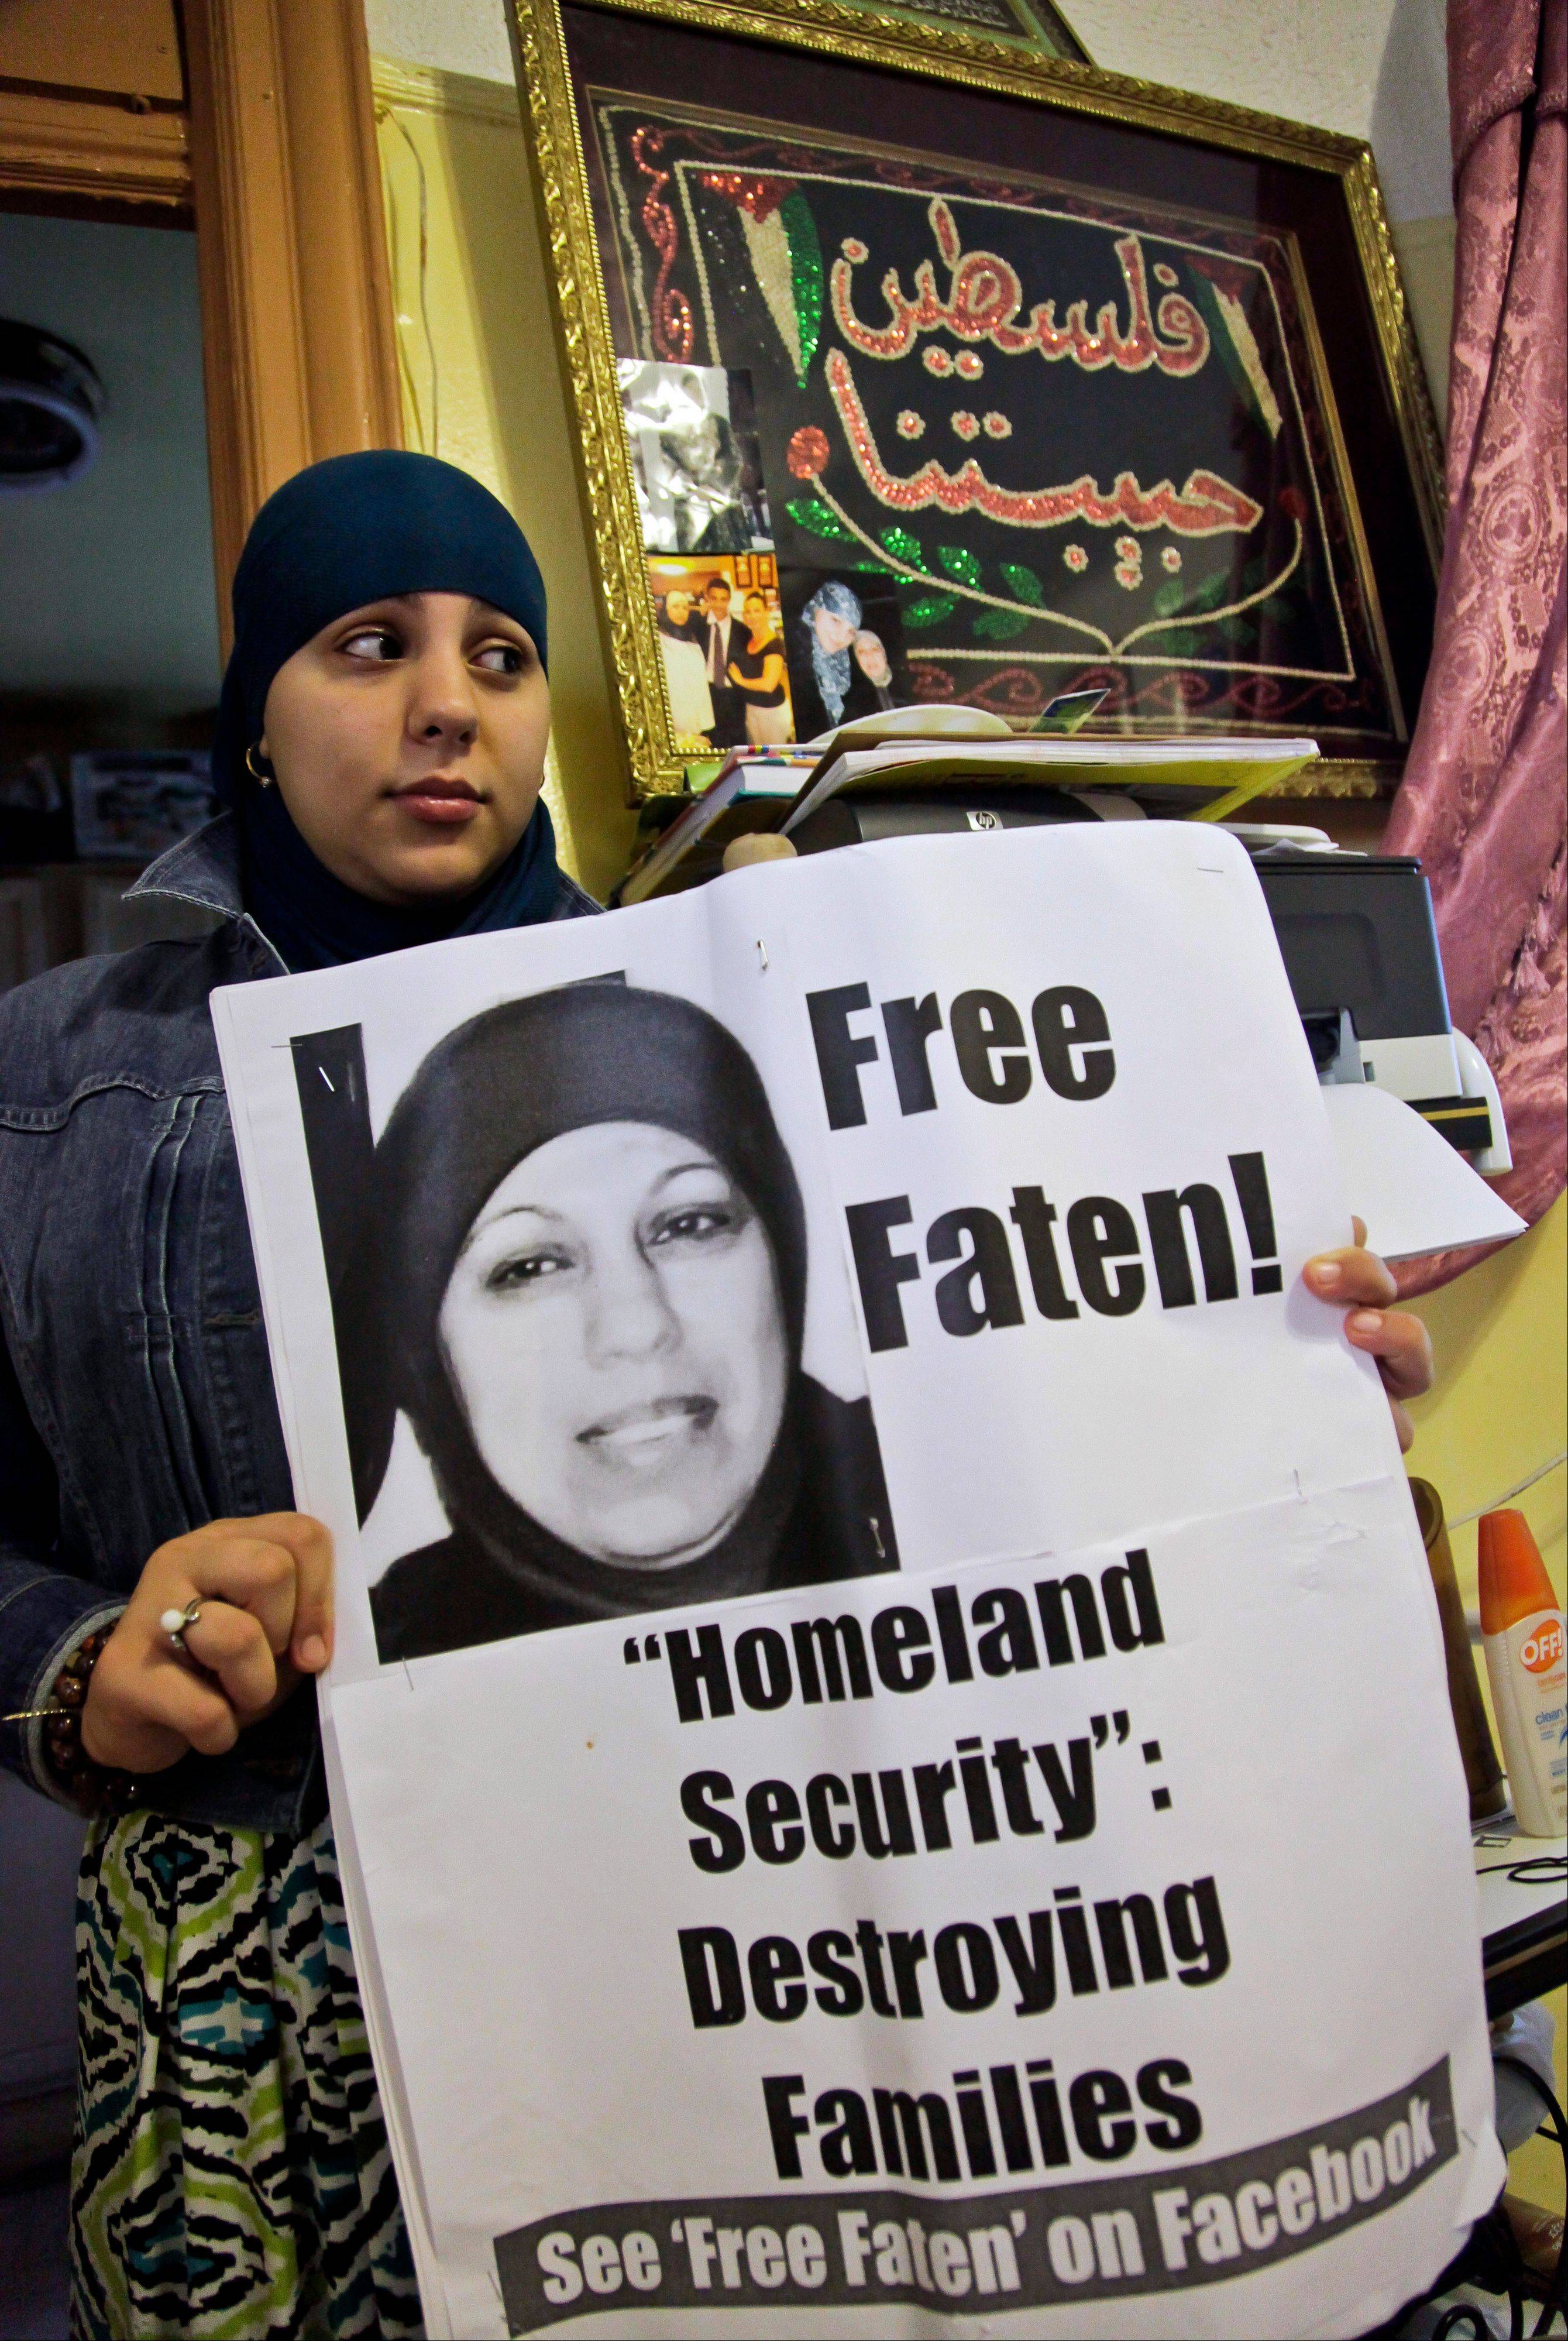 Janna Hakim, 18, shows a poster featuring a picture of her mother, Faten, who was taken away from her home in August 2010 by ICE officials and deported to Ramallah, Palestine. Janna has since engaged in public efforts to reunite the family.